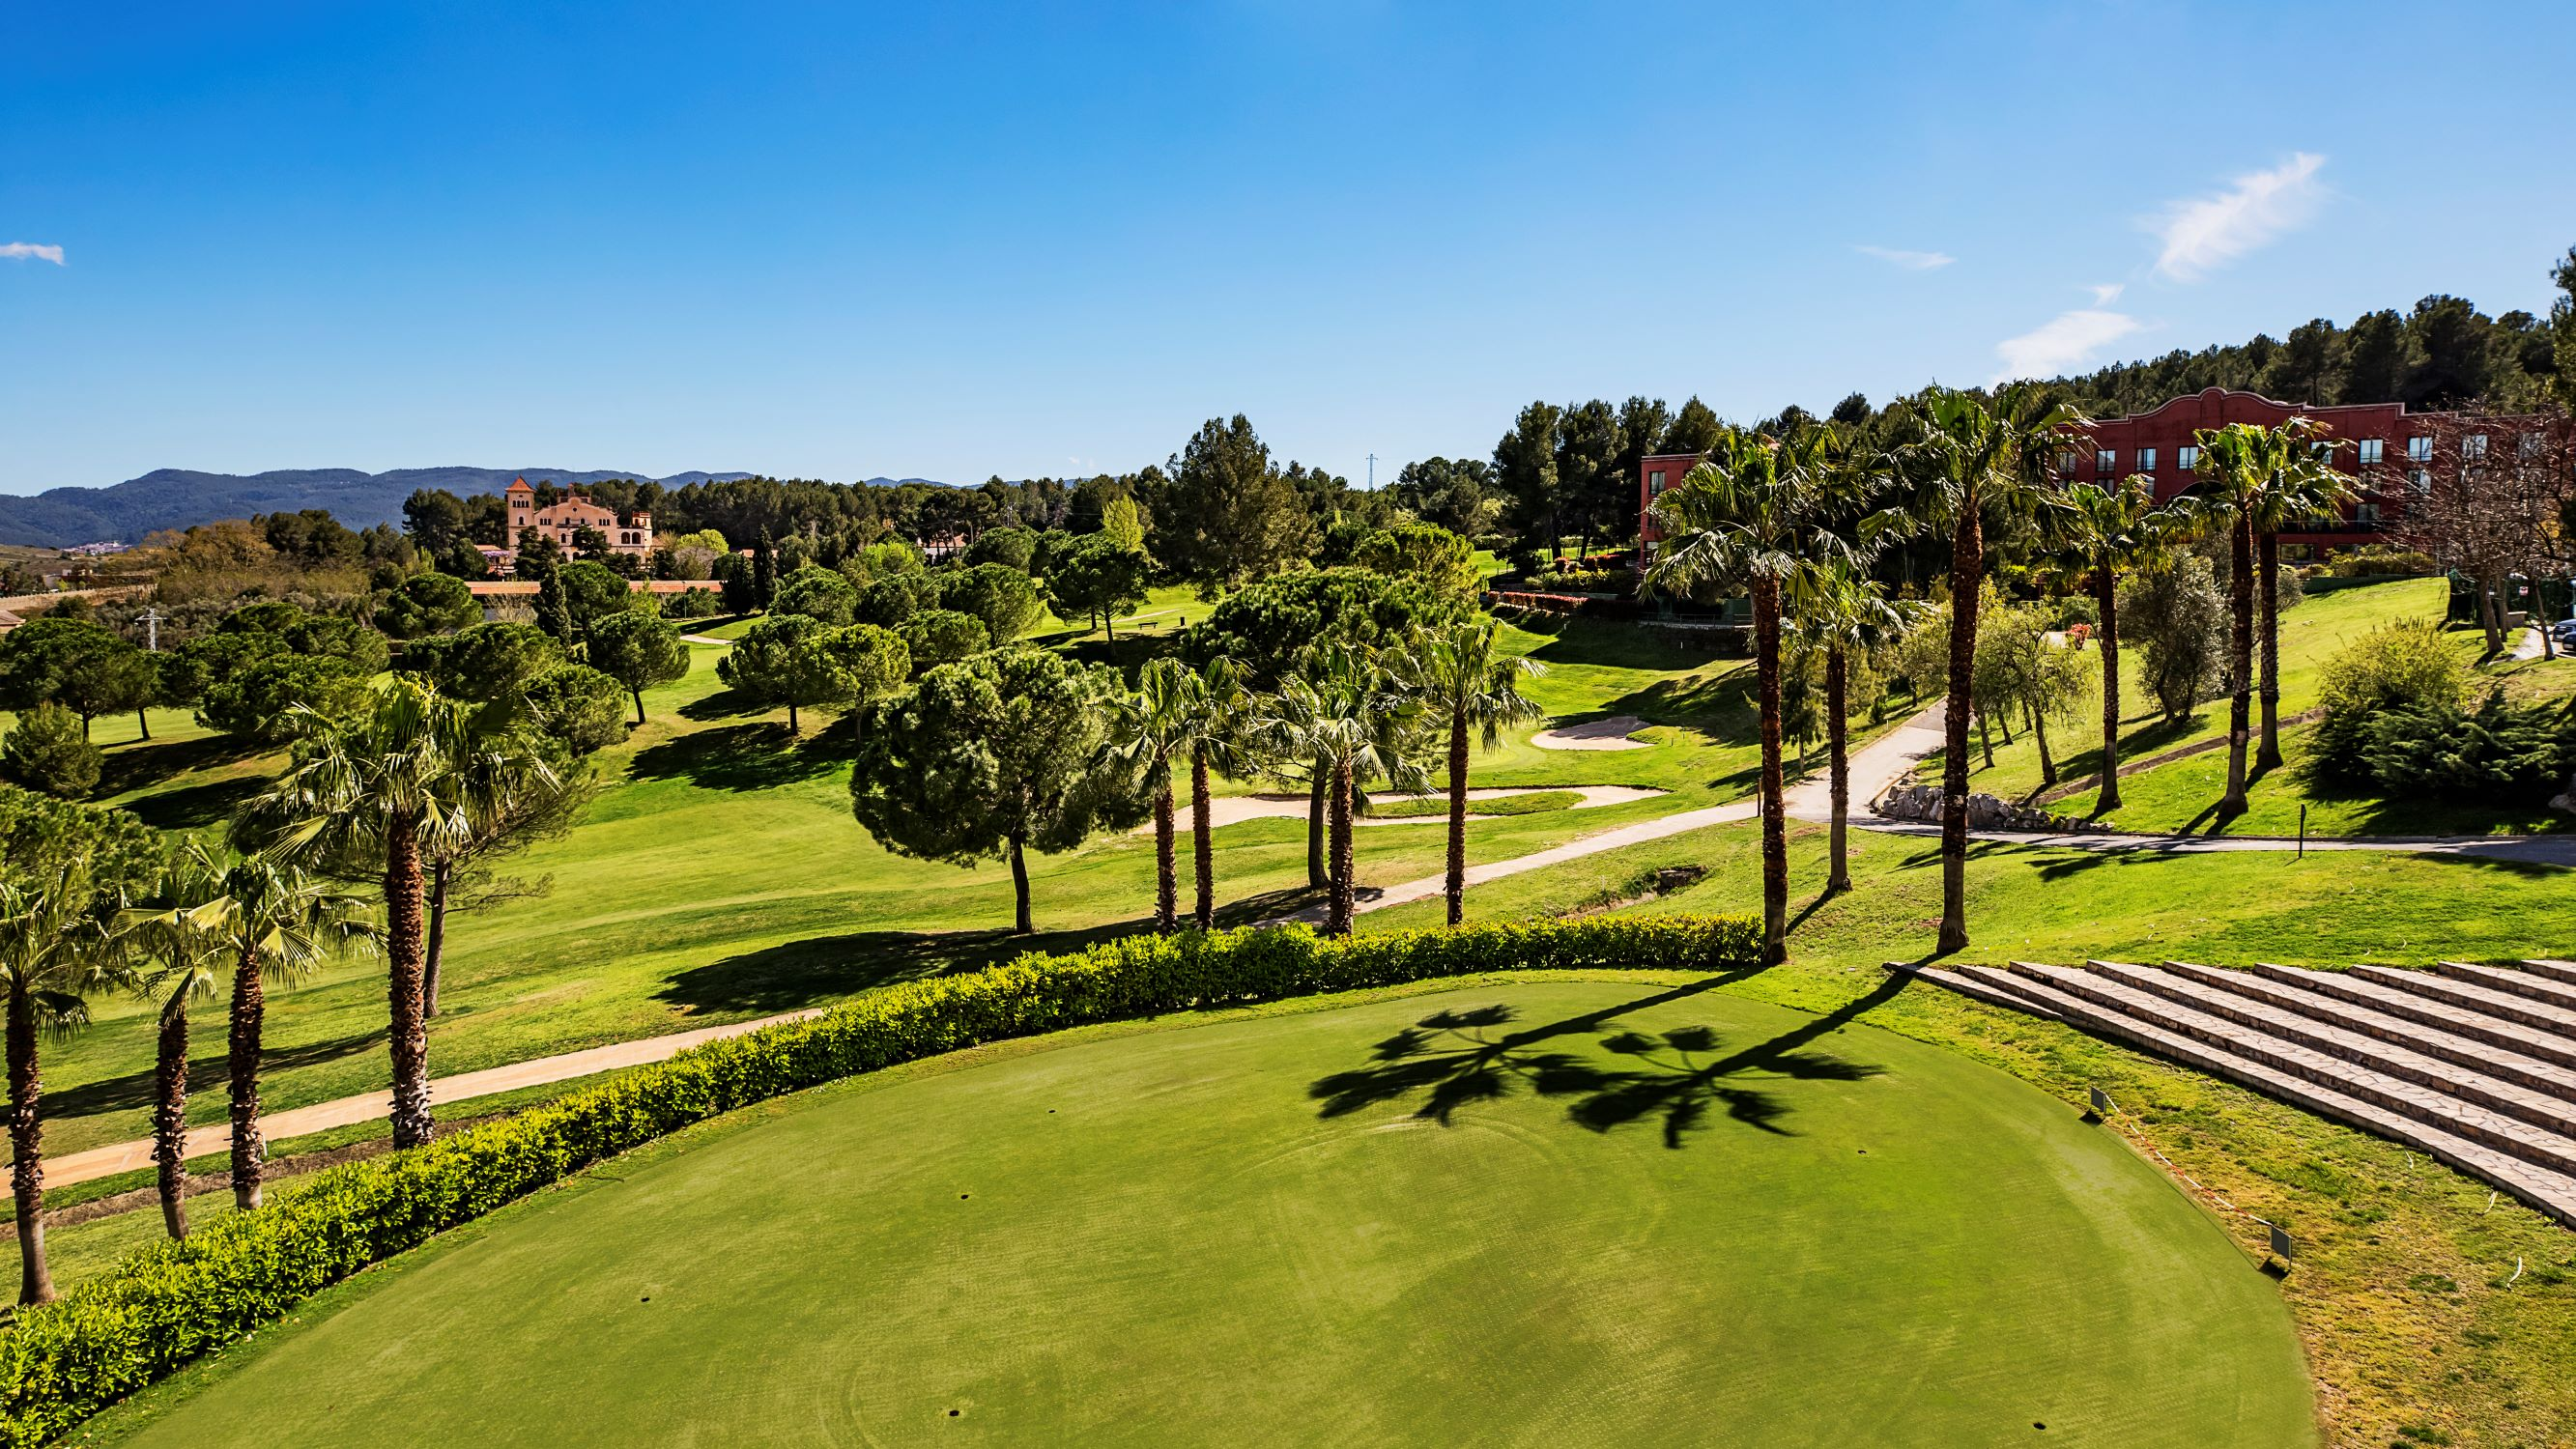 https://bubo.sk/uploads/galleries/7351/golf-de-barcelona.jpg